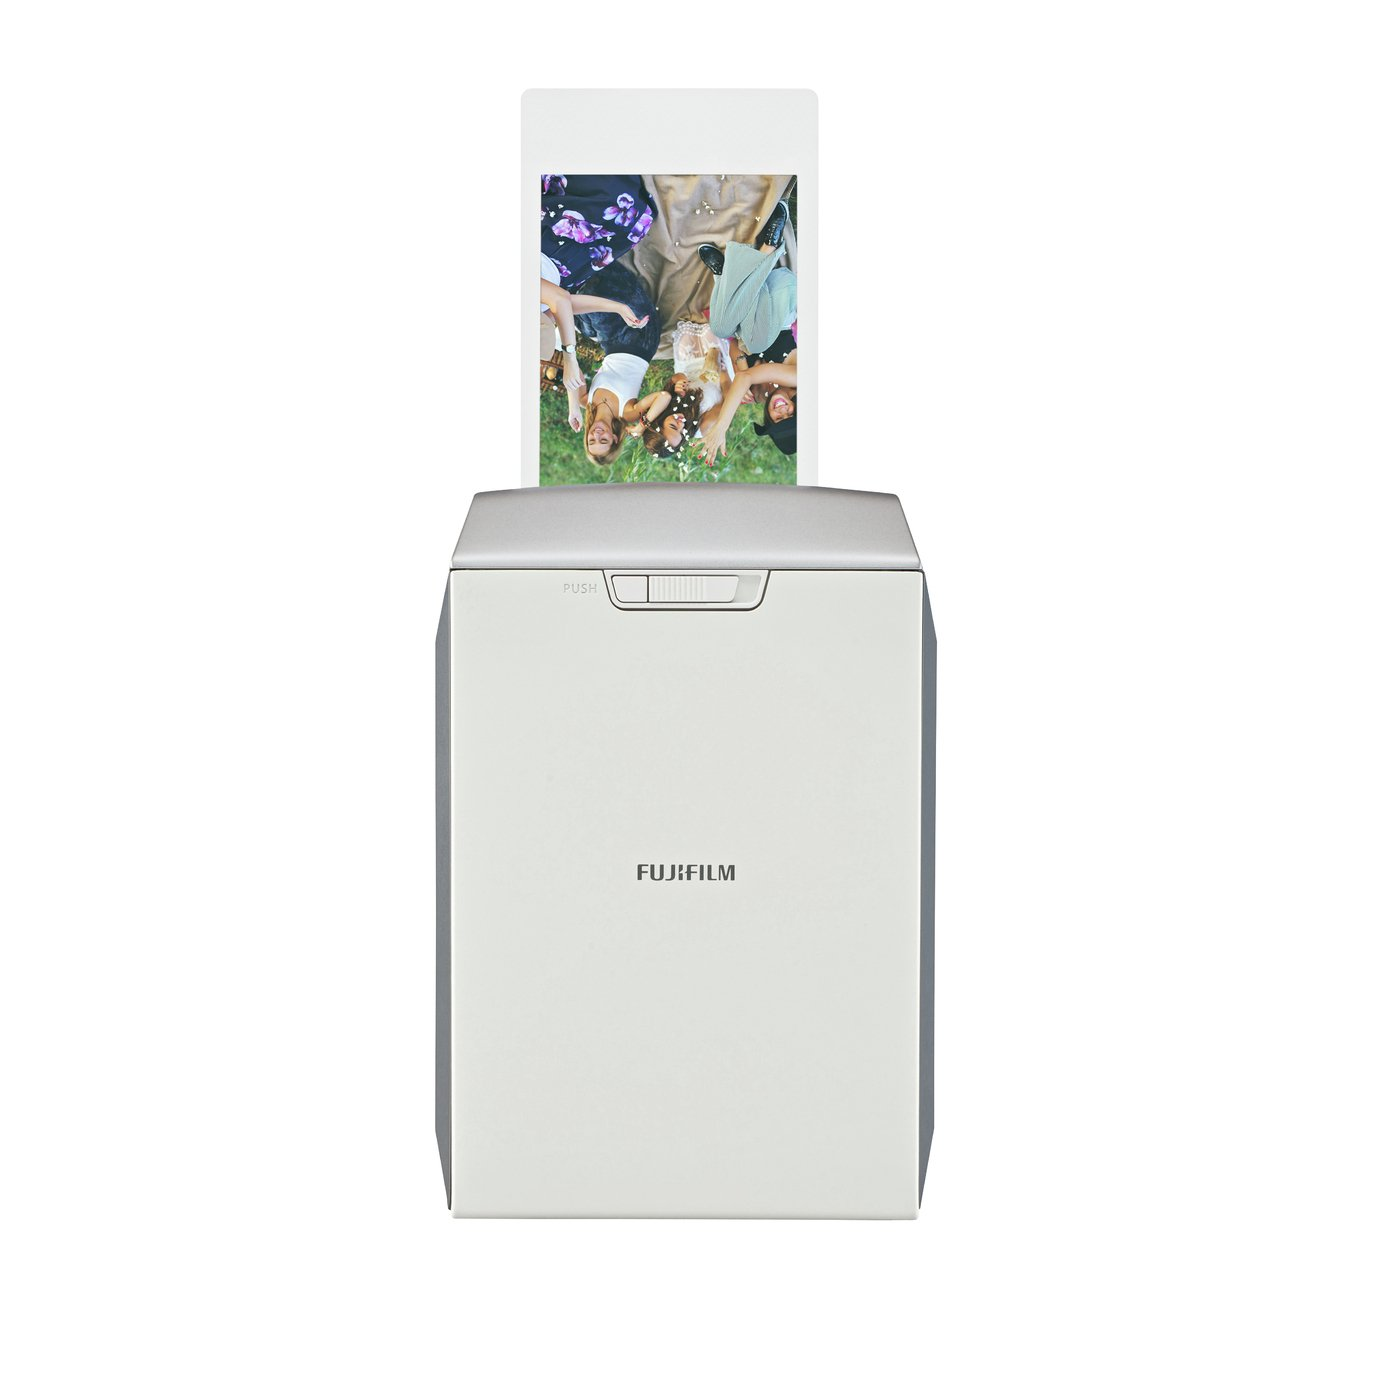 Instax Share Sp 2 Photo Printer With 10 Shots   Silver by Argos